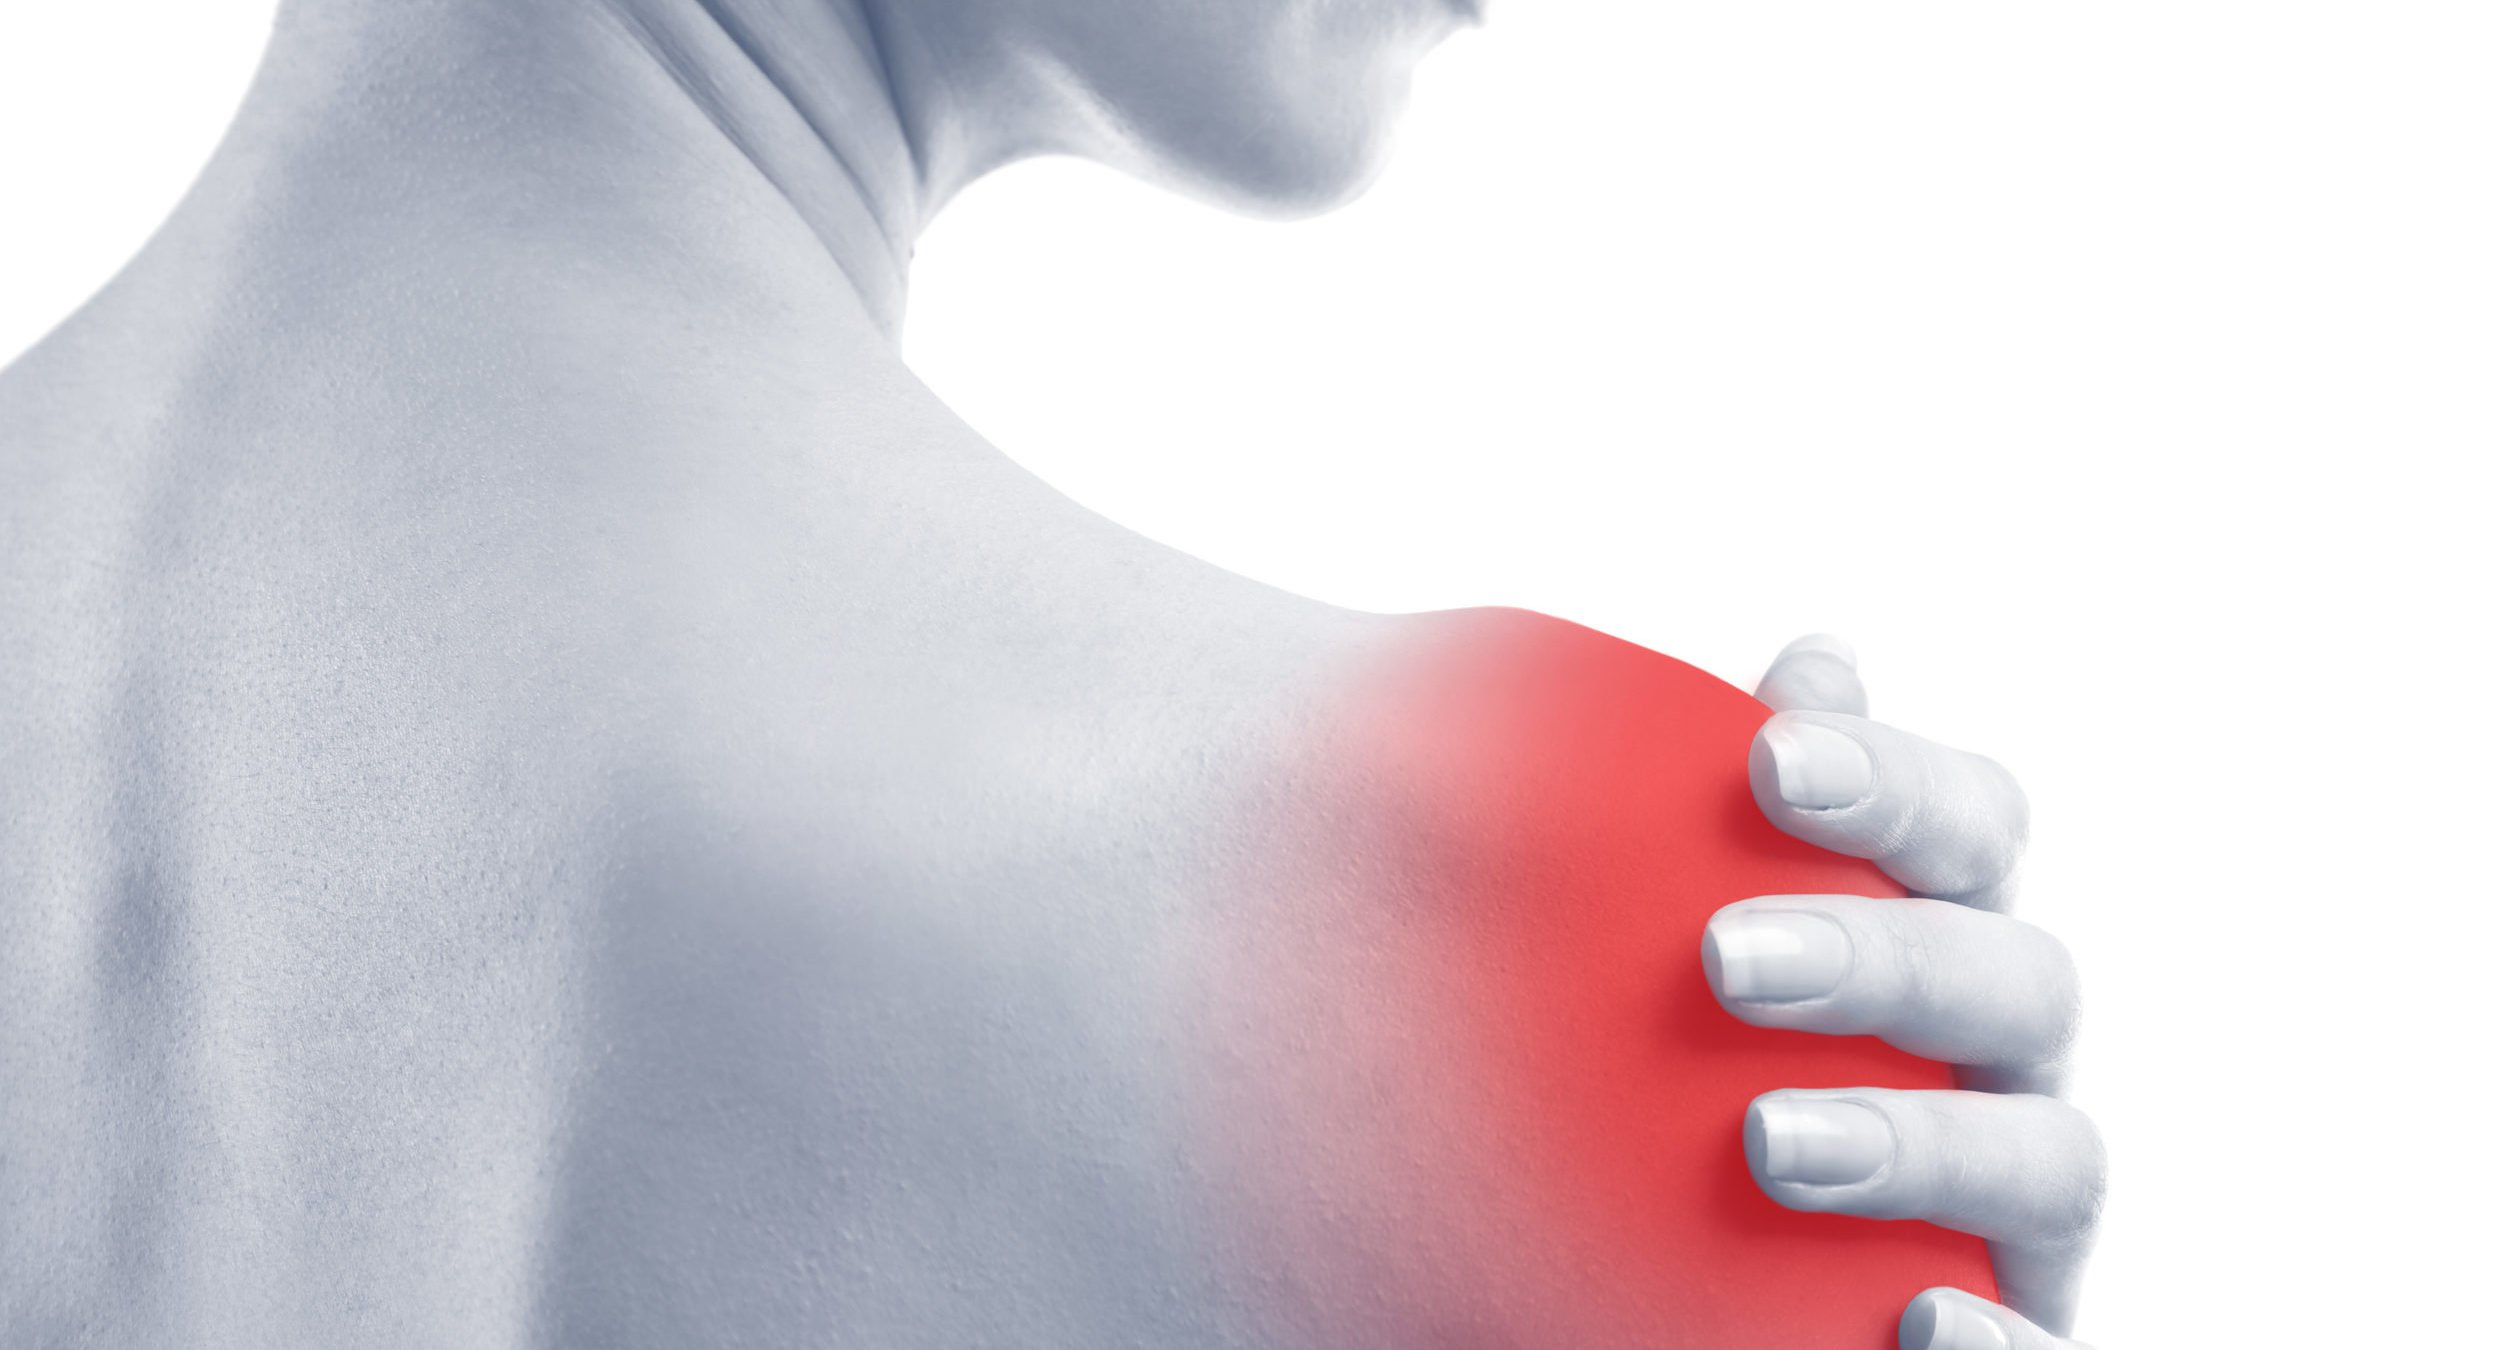 Causes of Shoulder Pain: Connecting the Dots from Symptom ...